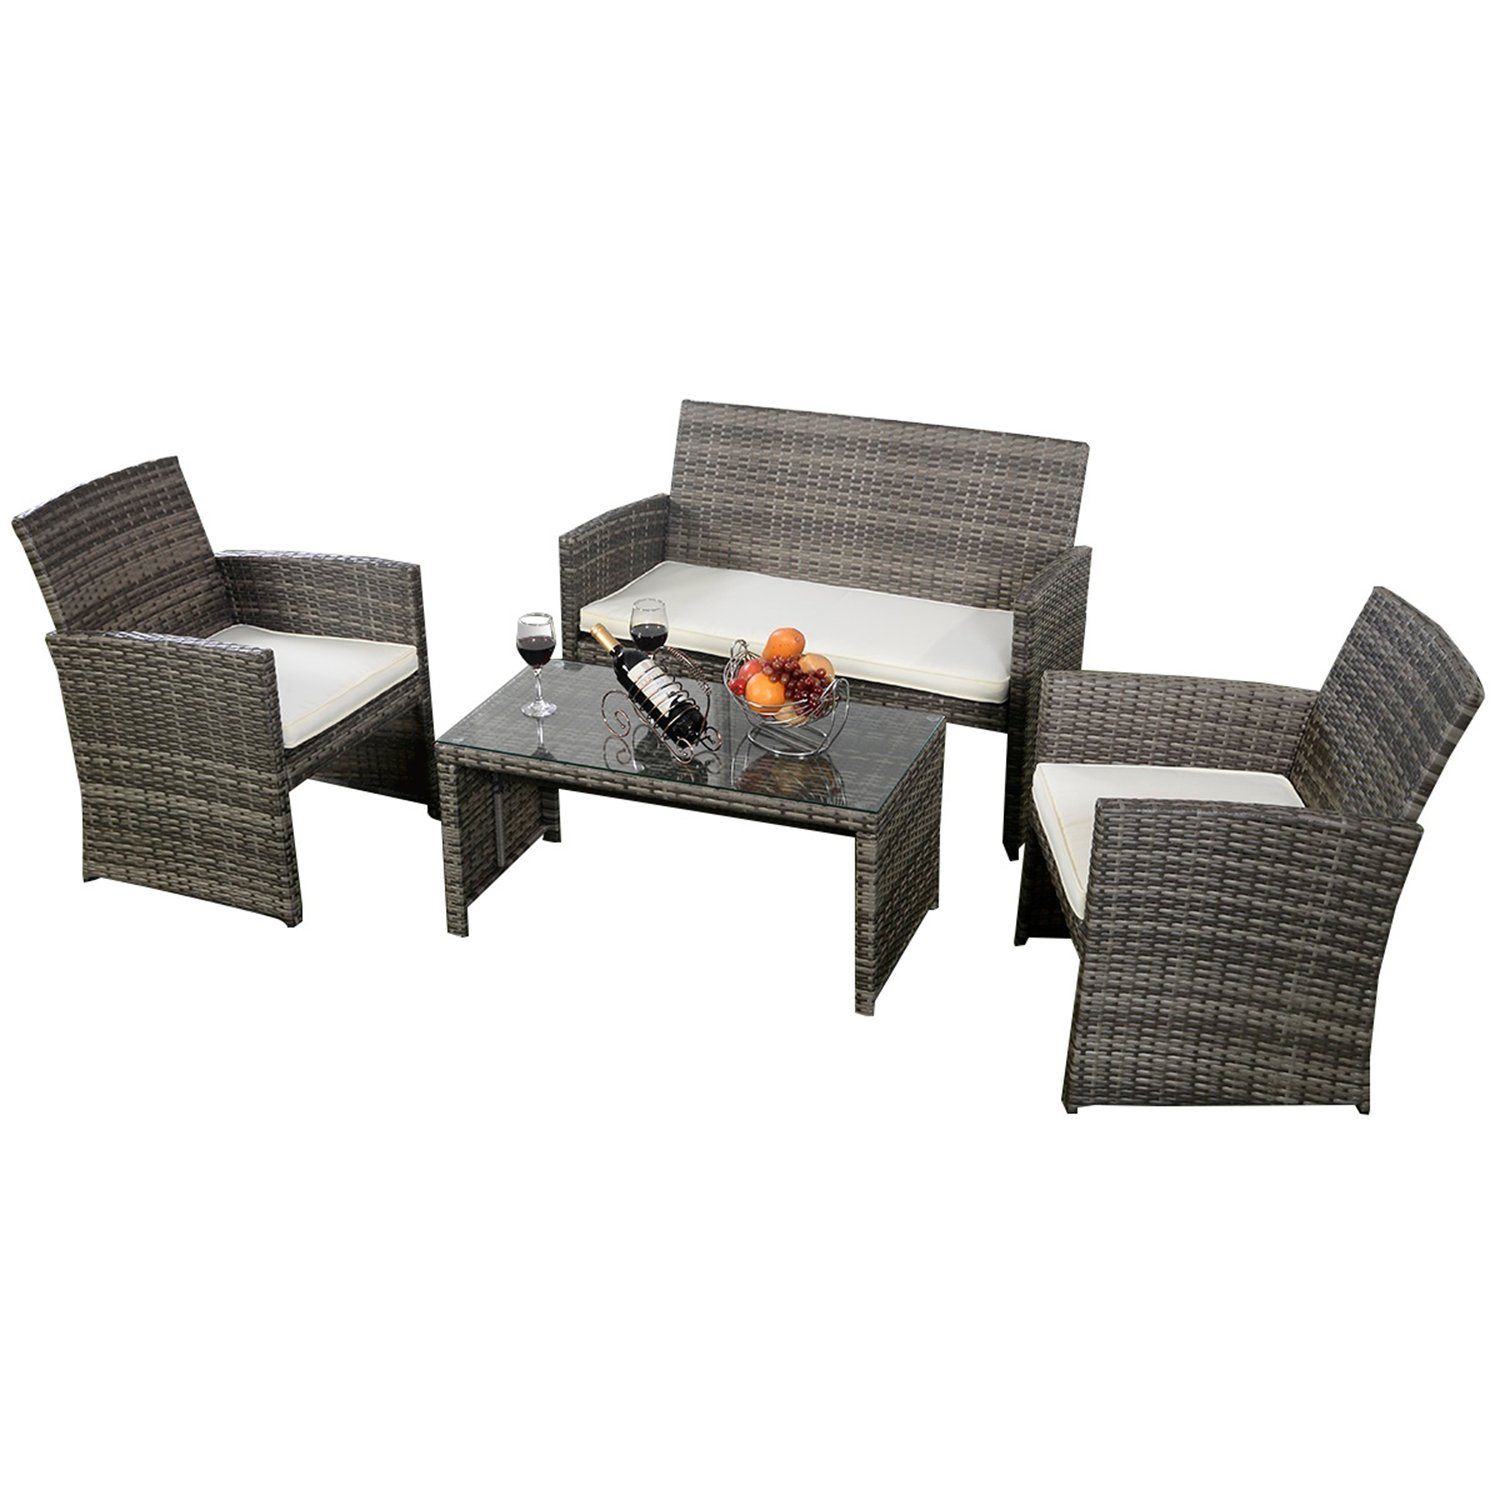 Outdoor Patio Furniture Set Cushioned 4 Pieces Wicker Patio Set Table, Two Single Sofas and a Double Sofa Gray Finish with Cushions Outdoor Furniture Lawn Rattan Garden Set